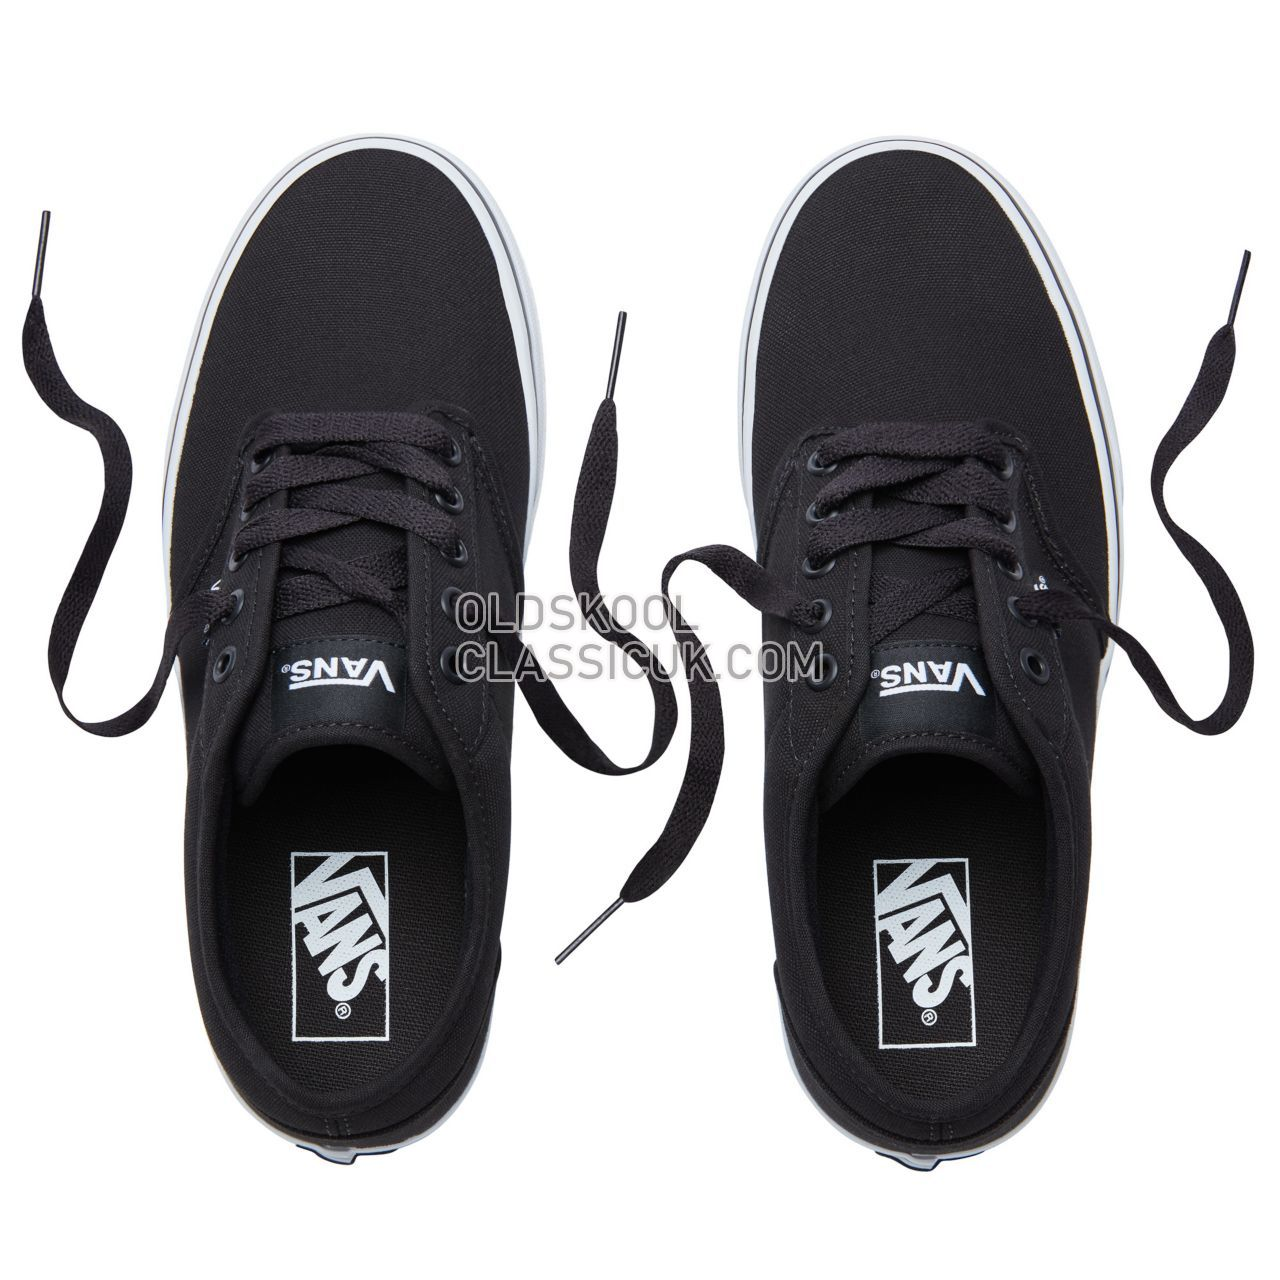 Vans Atwood Sneakers Mens Black/White VN000TUY187 Shoes